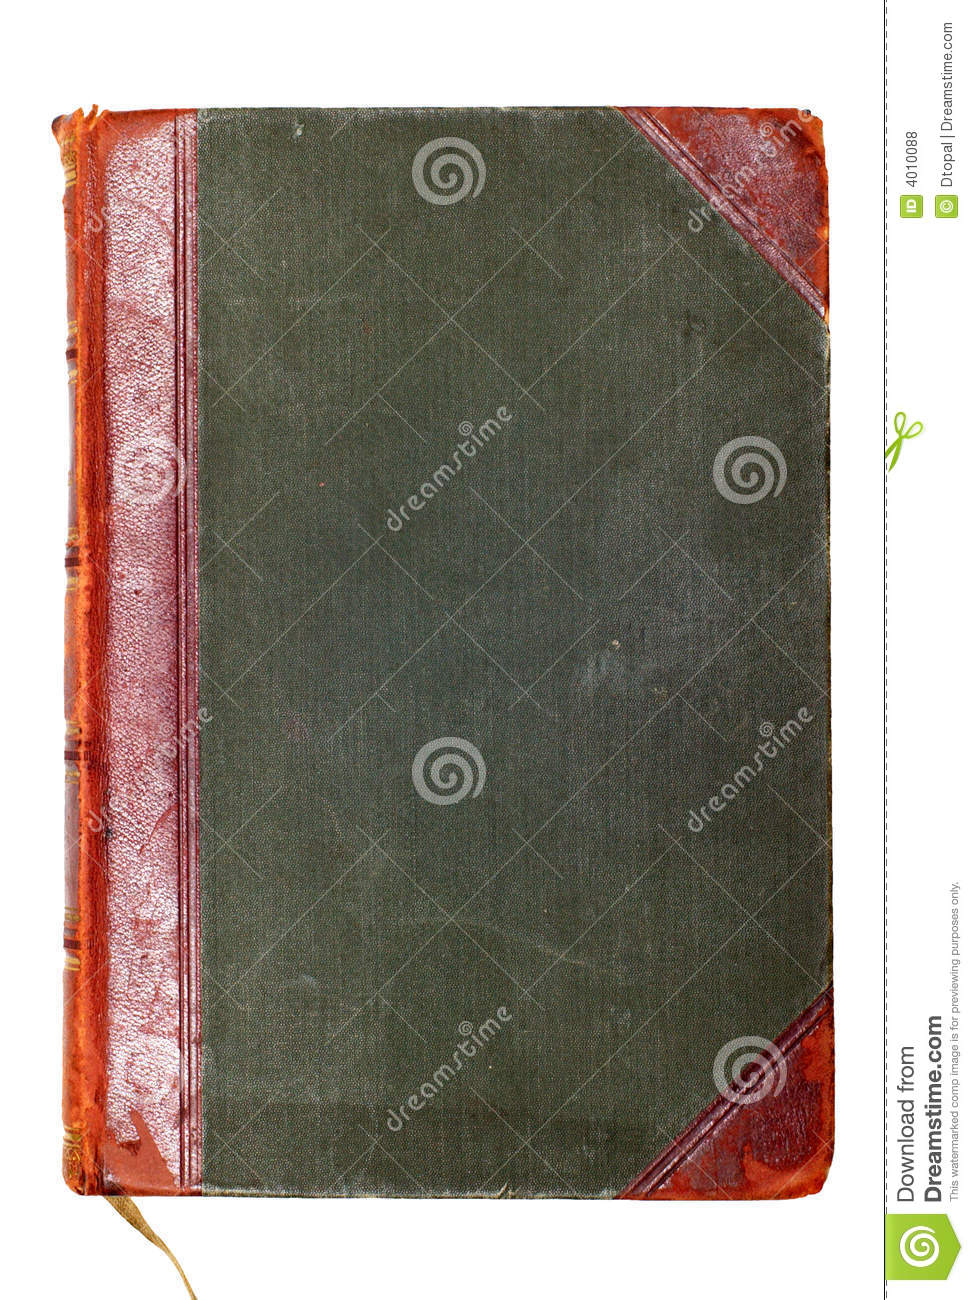 Cookbook With Green Cover ~ Old green book cover royalty free stock photos image